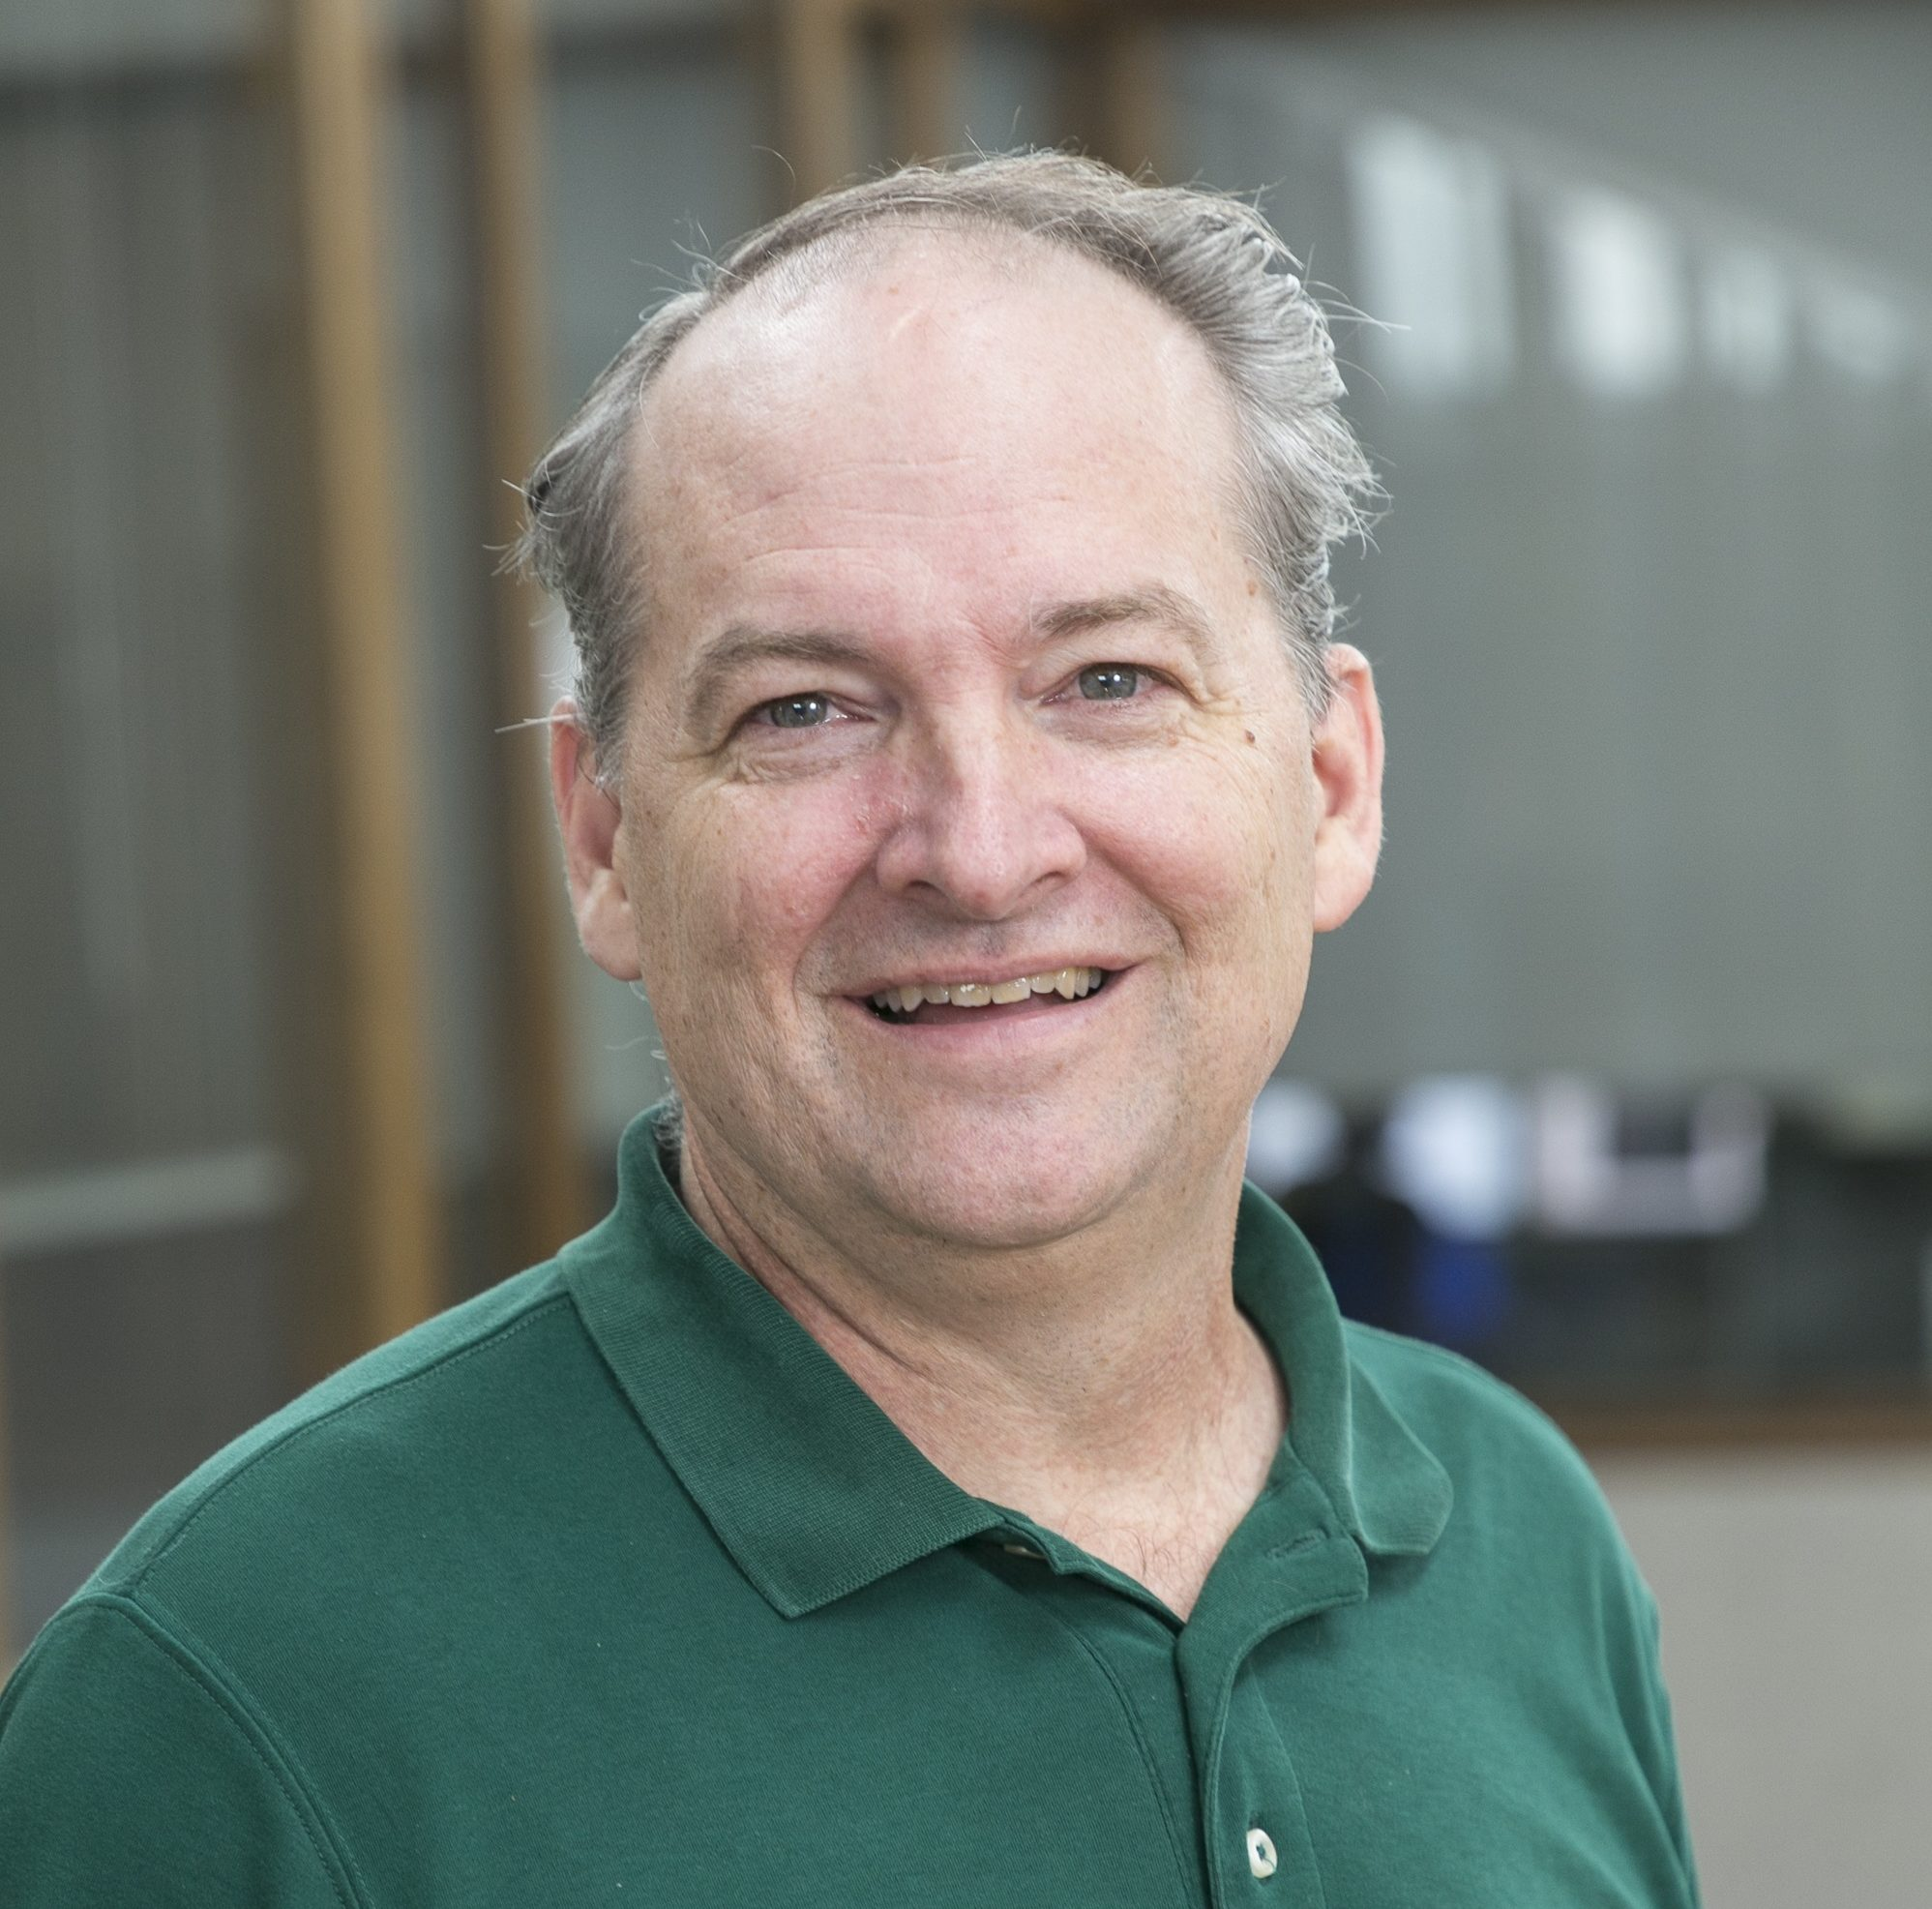 Dr. Kevin Hanley, MD, MBA, BSEE